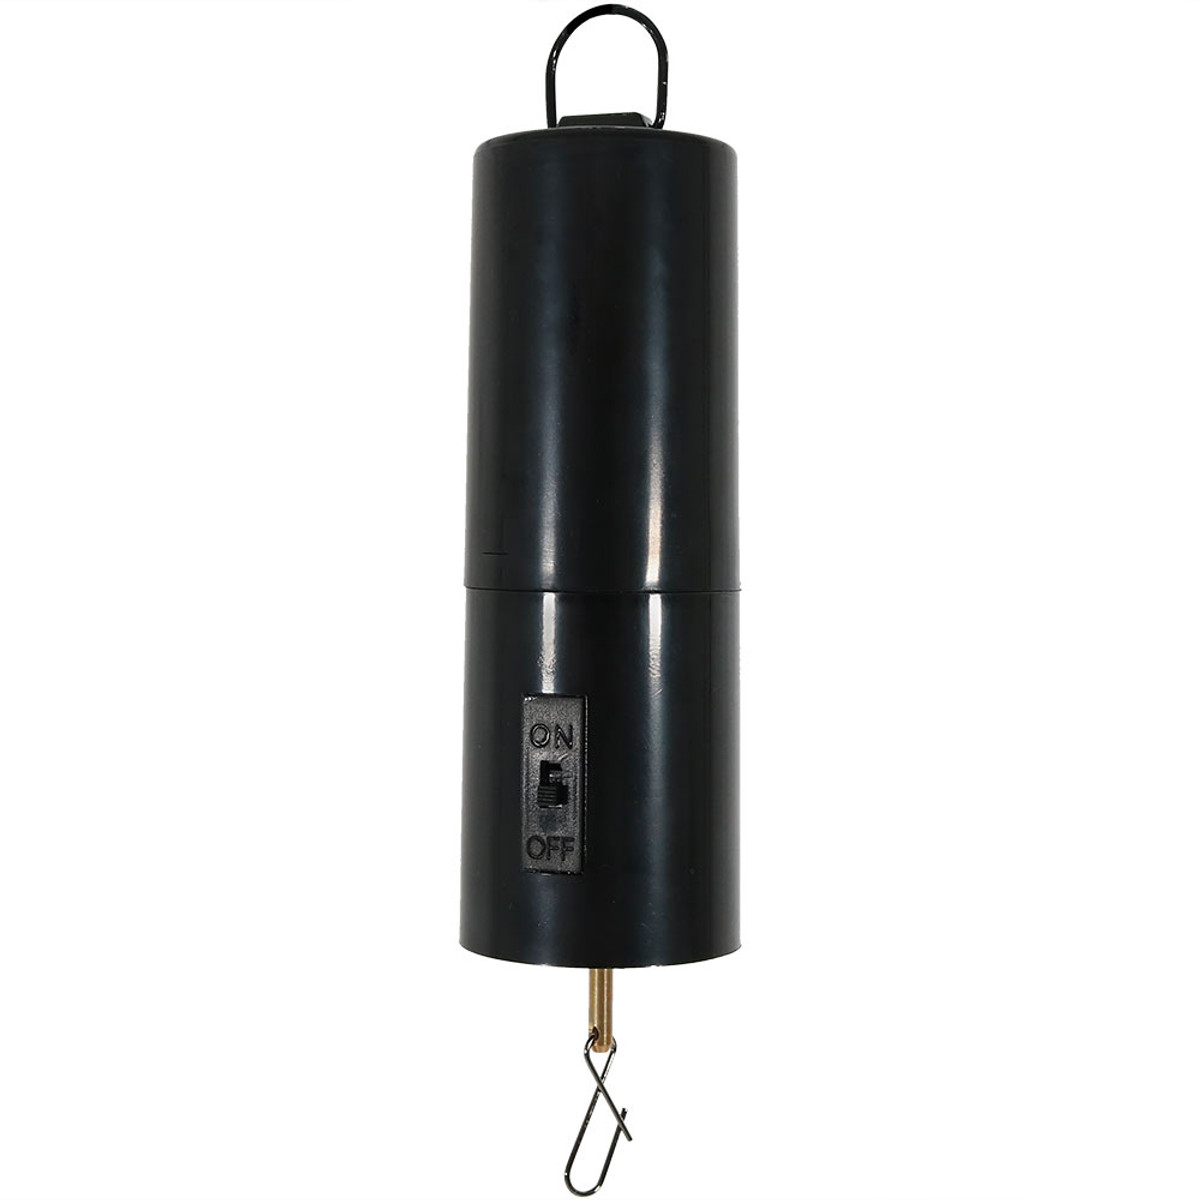 Wind Spinner Battery Powered Motor 30 RPM Great for Holiday Outdoor Decor